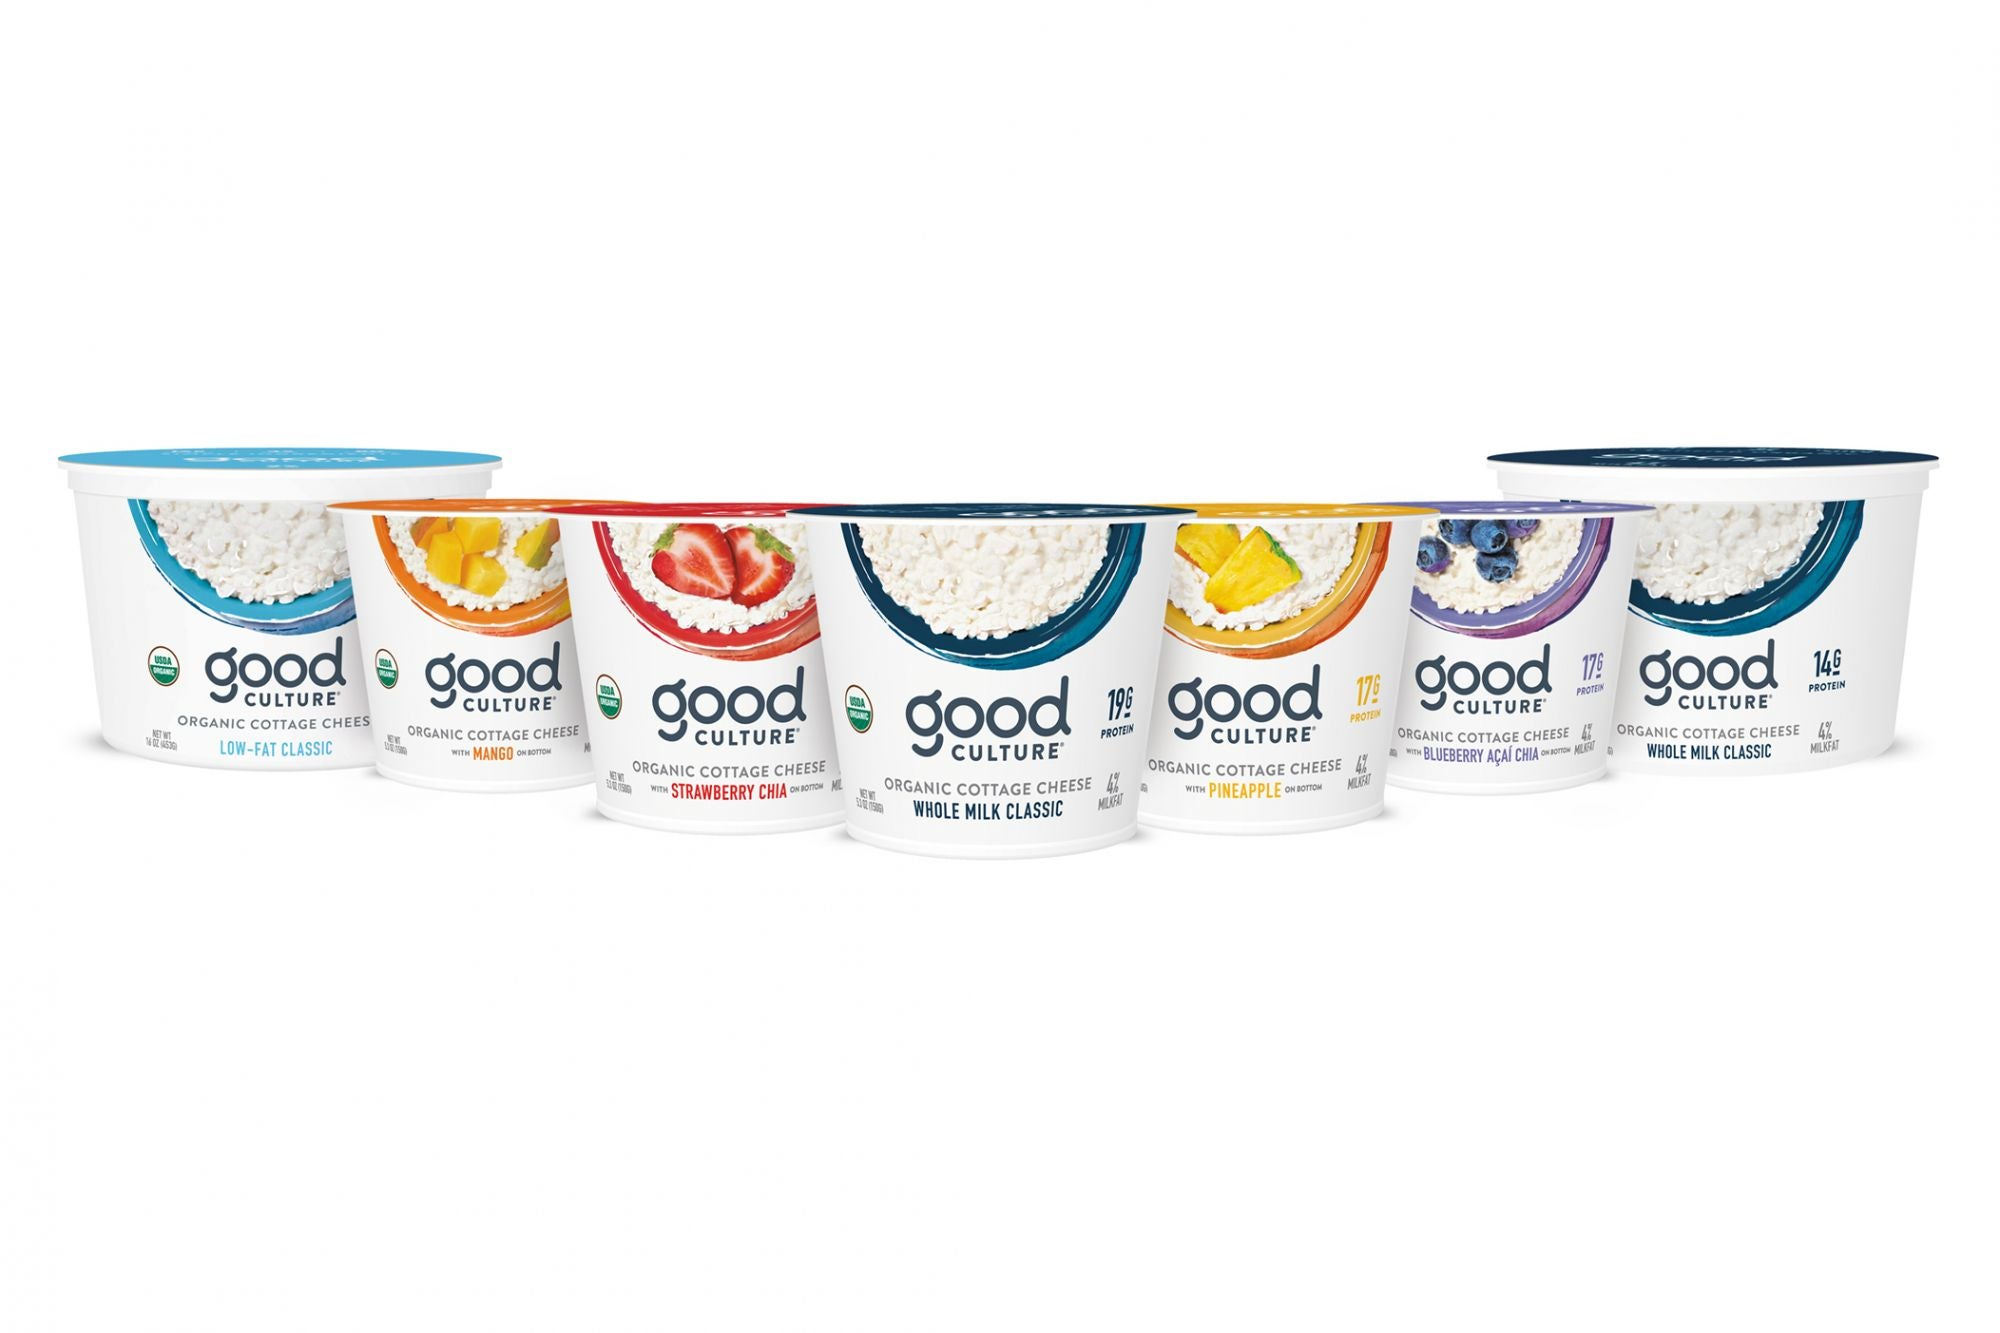 entrepreneur.com - Stephen J. Bronner - This Startup Raised $17 Million for Its Efforts to Resurrect Cottage Cheese Sales